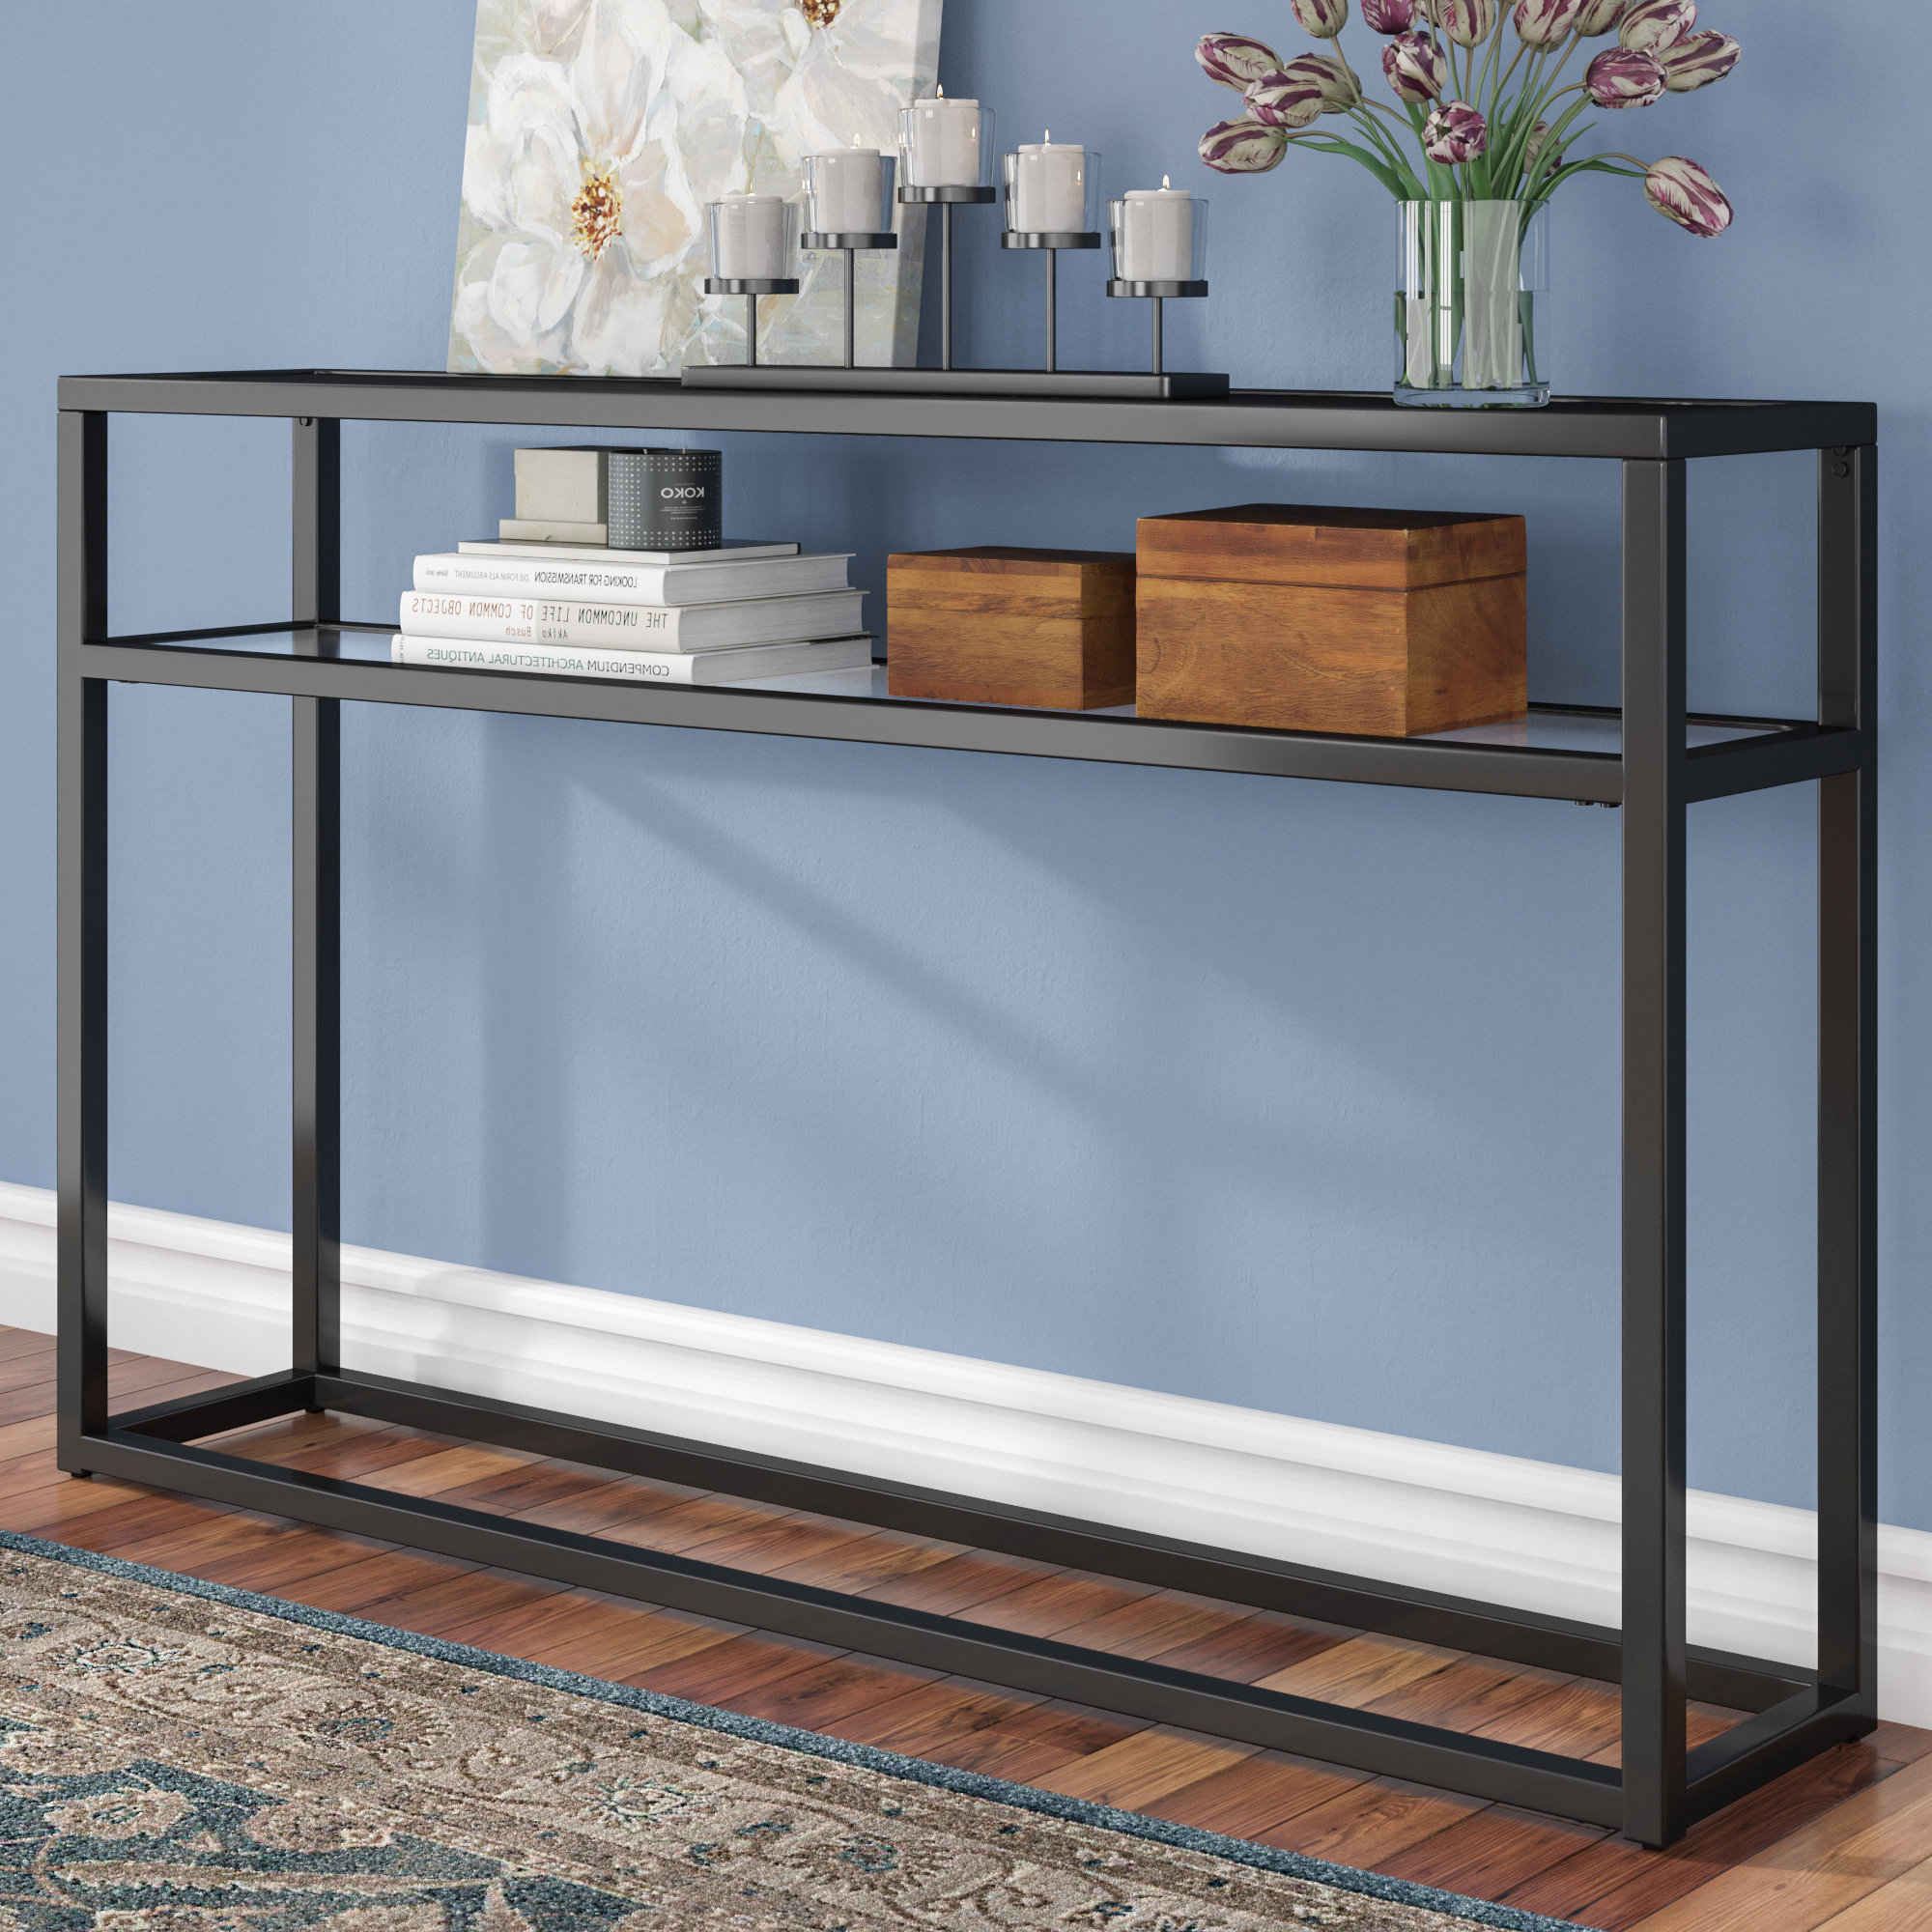 Wayfair Inside Mix Patina Metal Frame Console Tables (View 16 of 20)